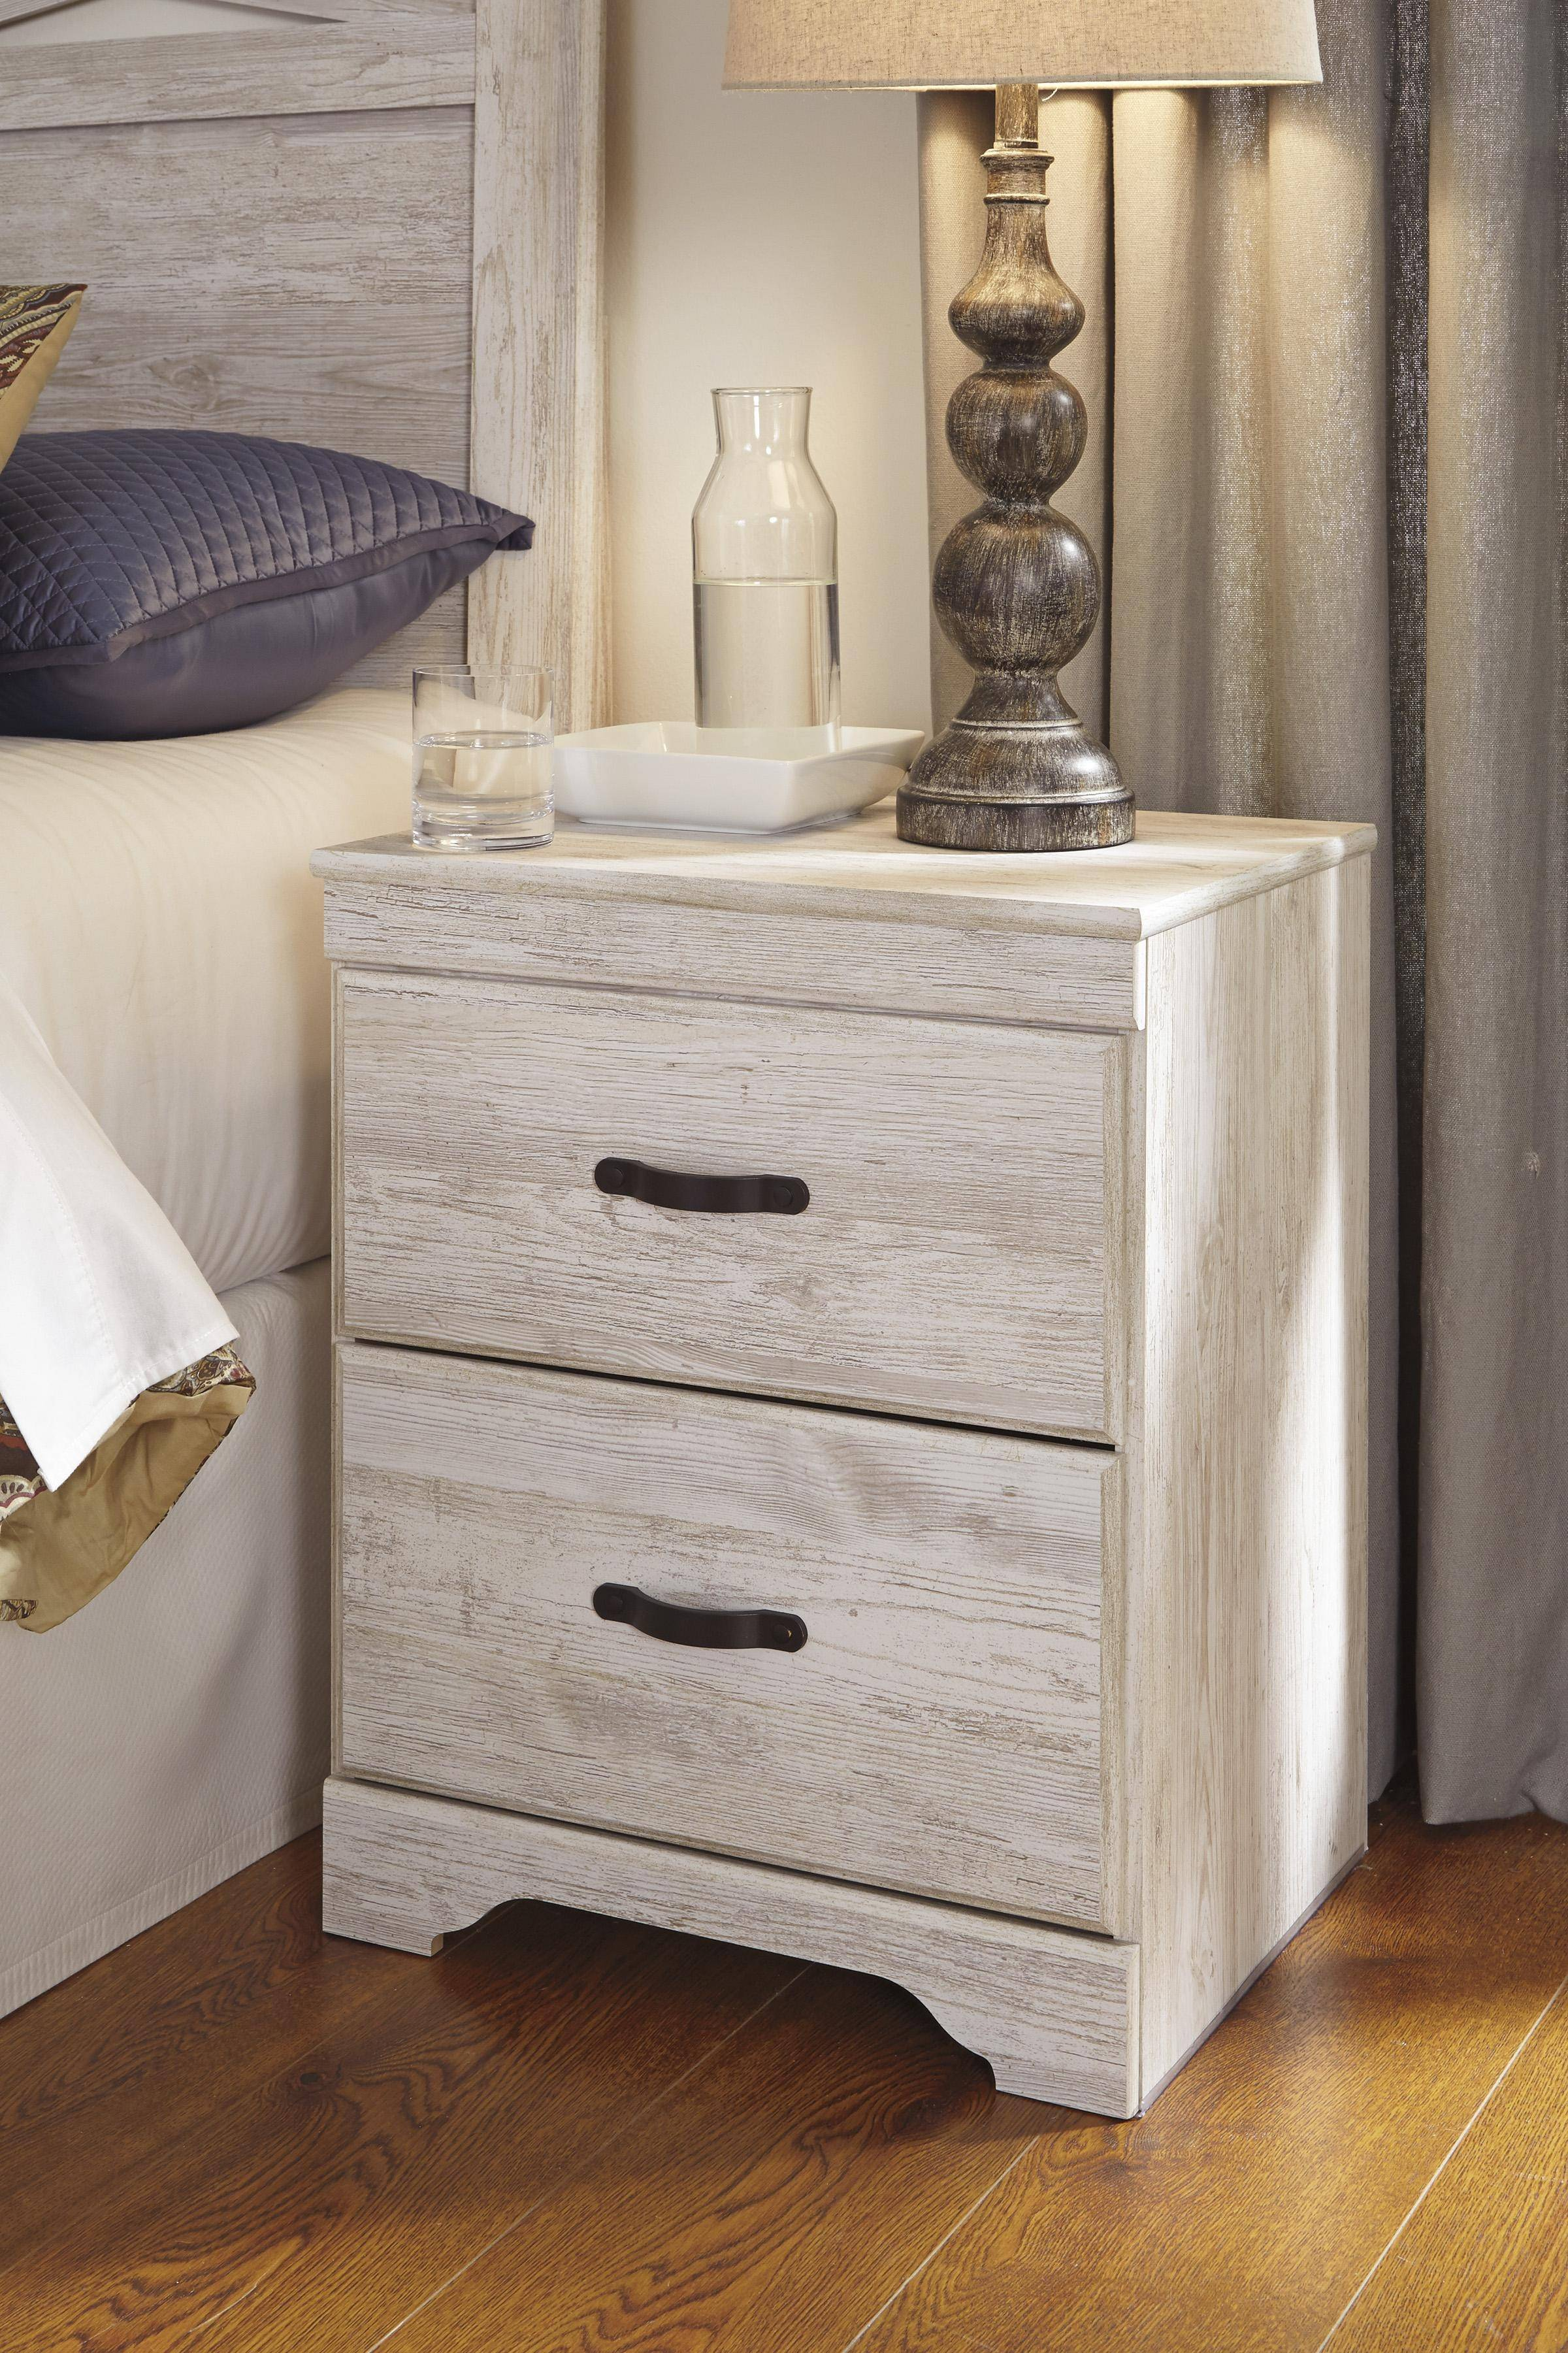 marvellous whitewash furniture bedroom set | Ashley Briartown B218 Queen Size Panel Bedroom Set 3pcs in ...